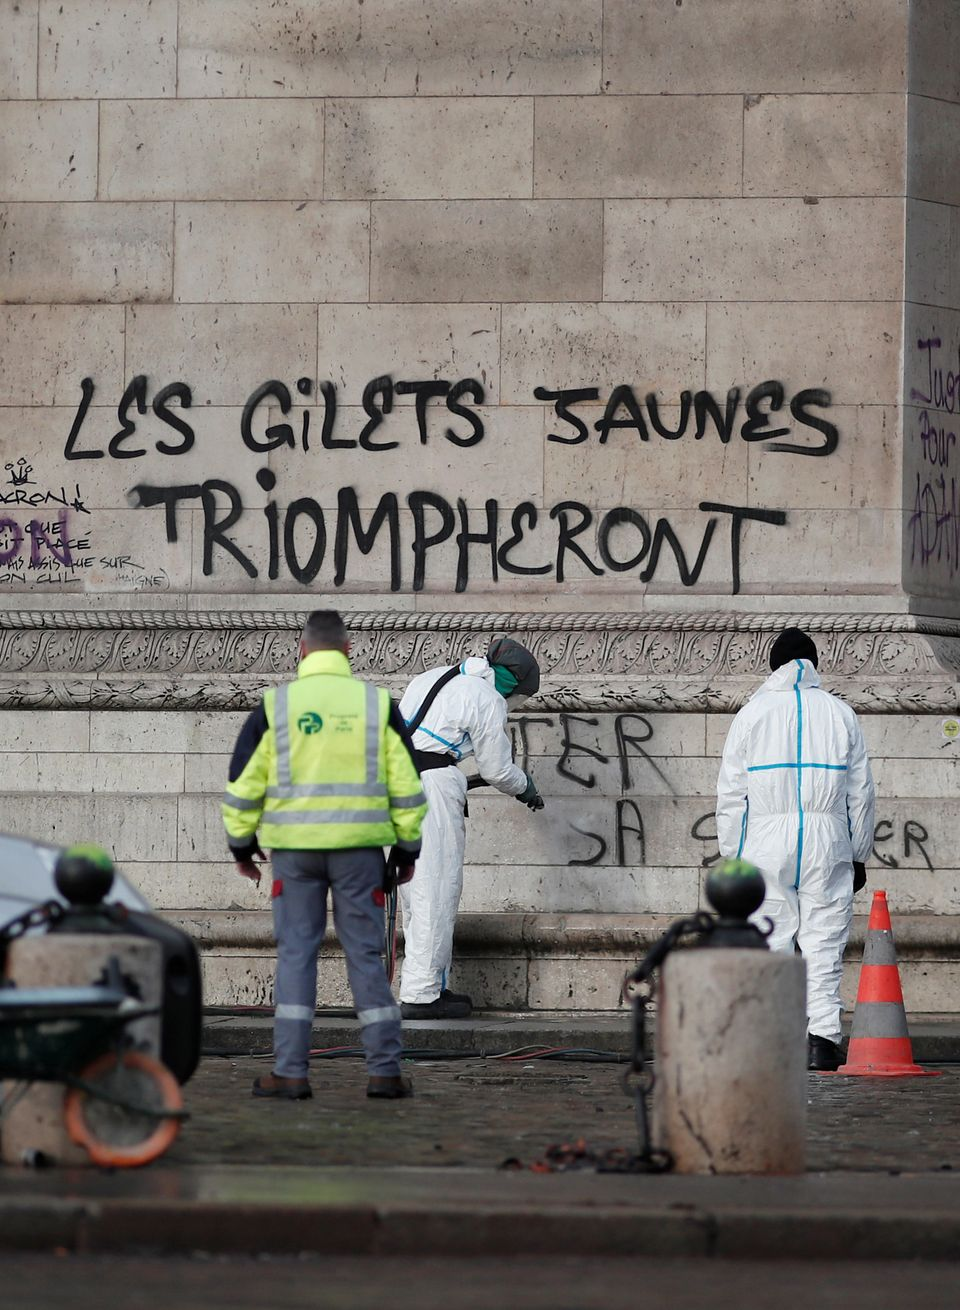 Professional cleaners begin to scrub graffiti from a monument in central Paris on